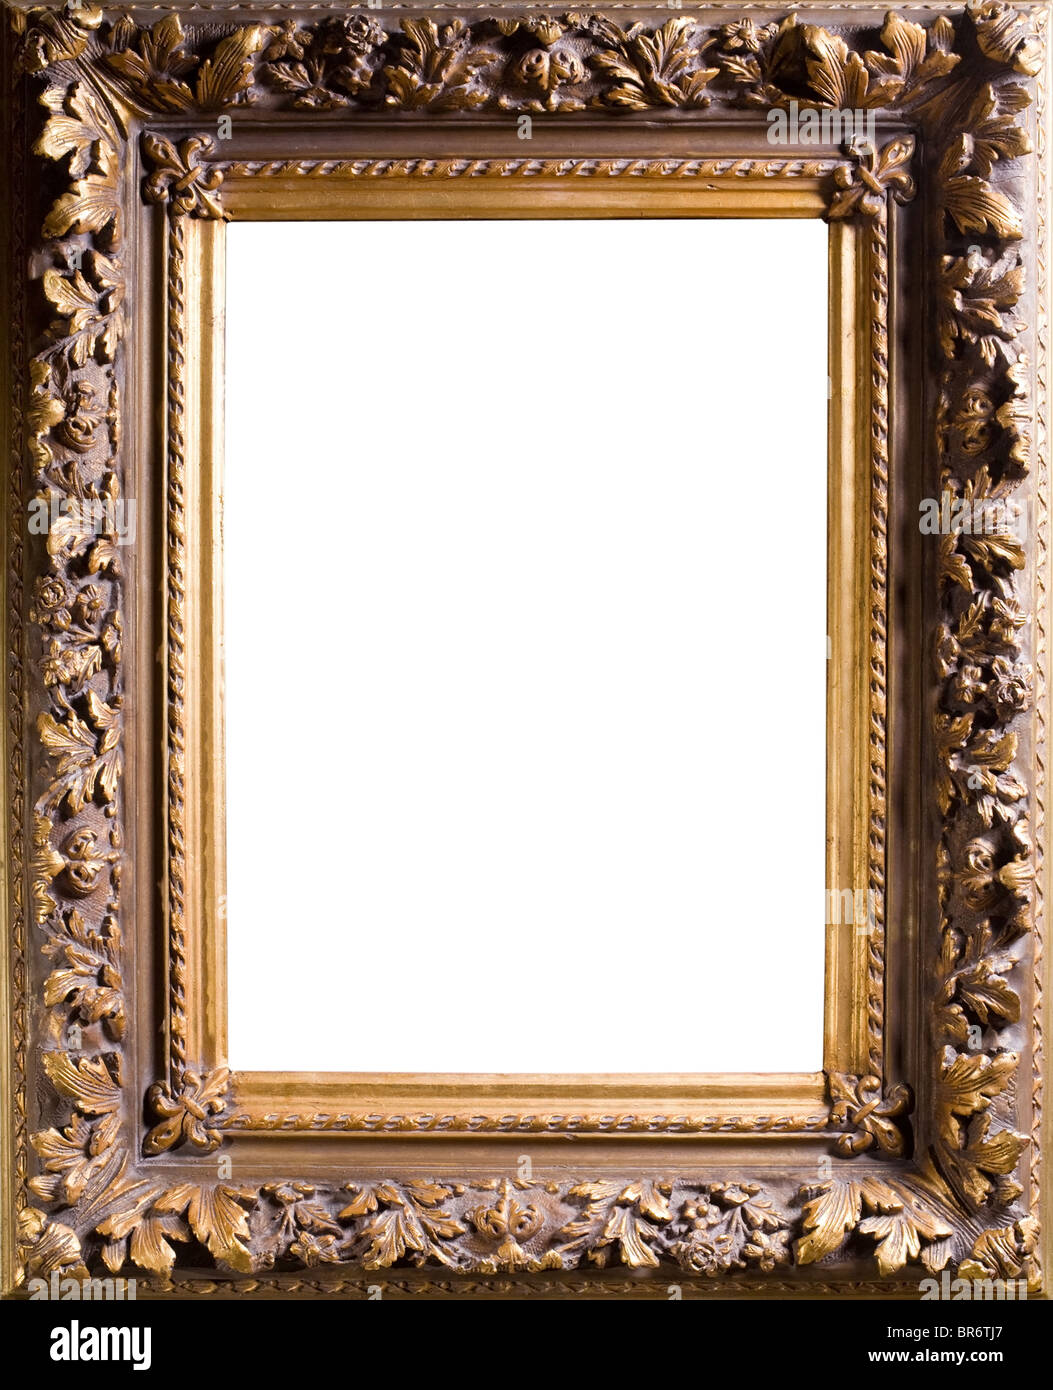 Baget old frame isolated on white. - Stock Image